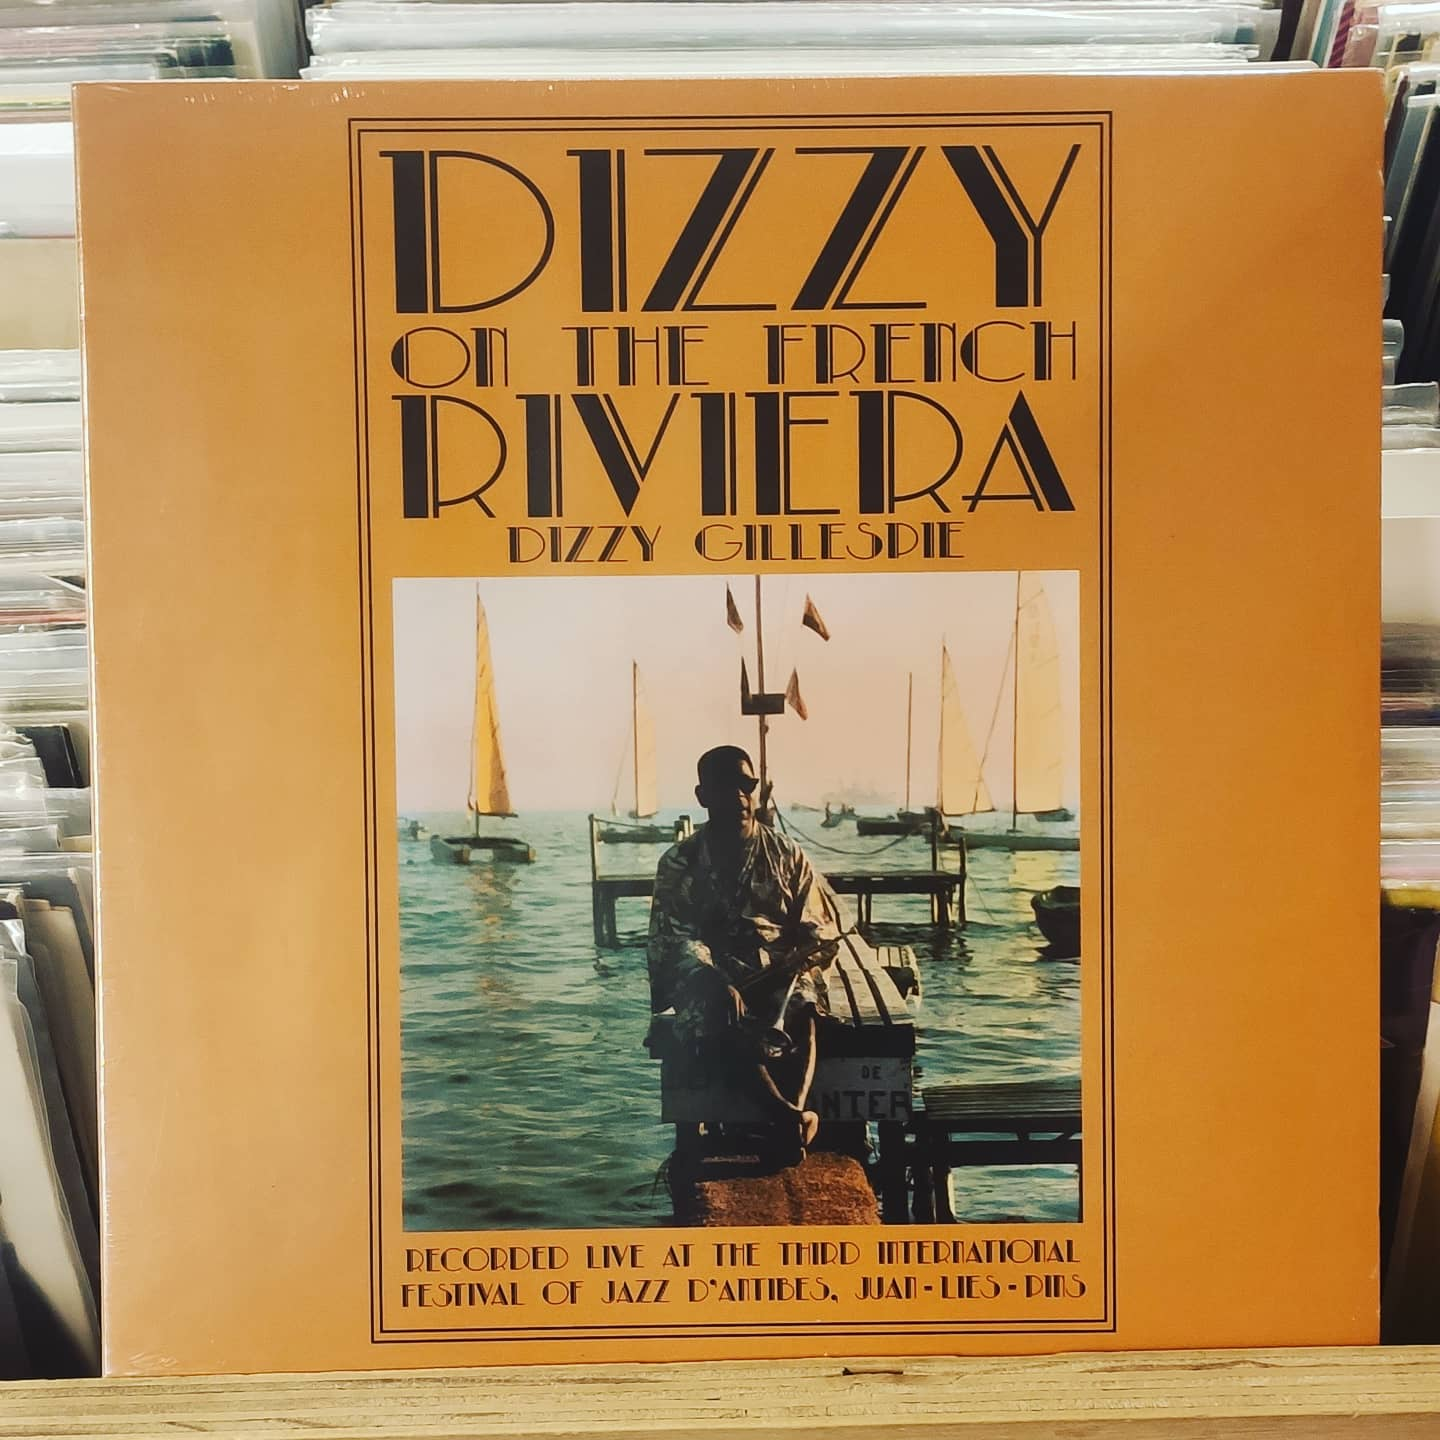 Product image Dizzy Gillespie – at the french riviera – LP Nieuw